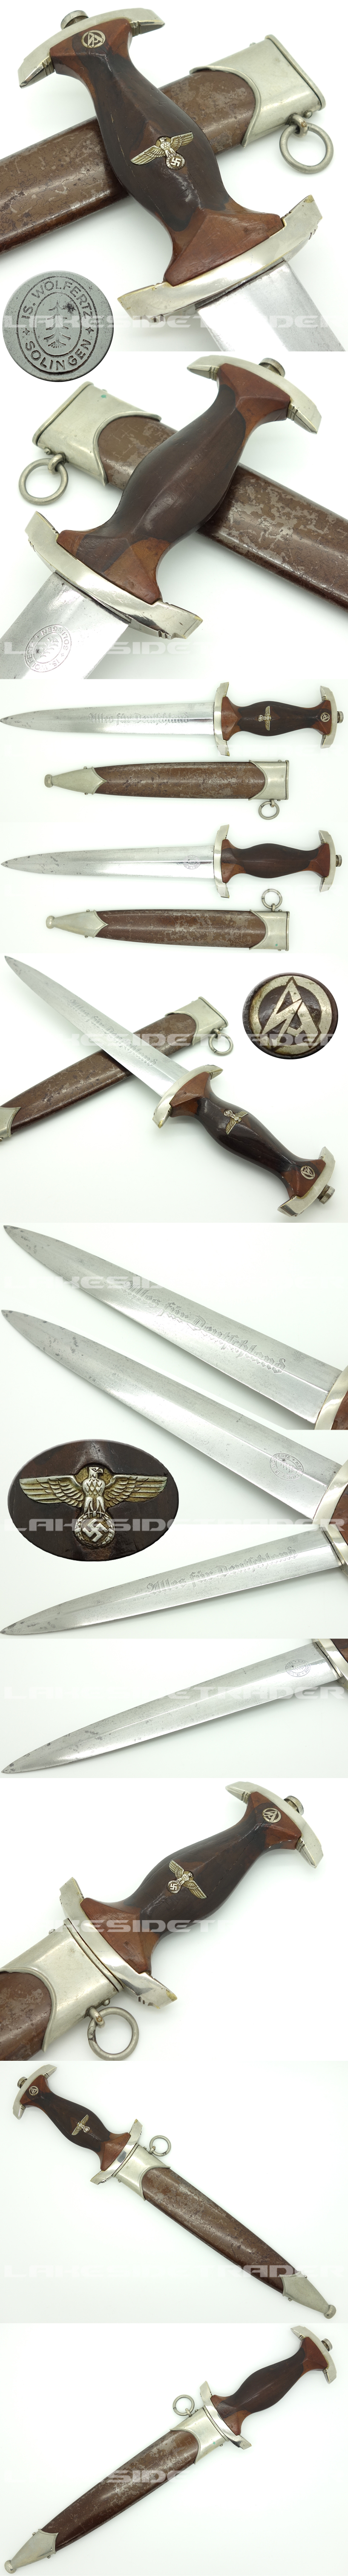 Rare - Early SA Dagger by Is. Wolfertz